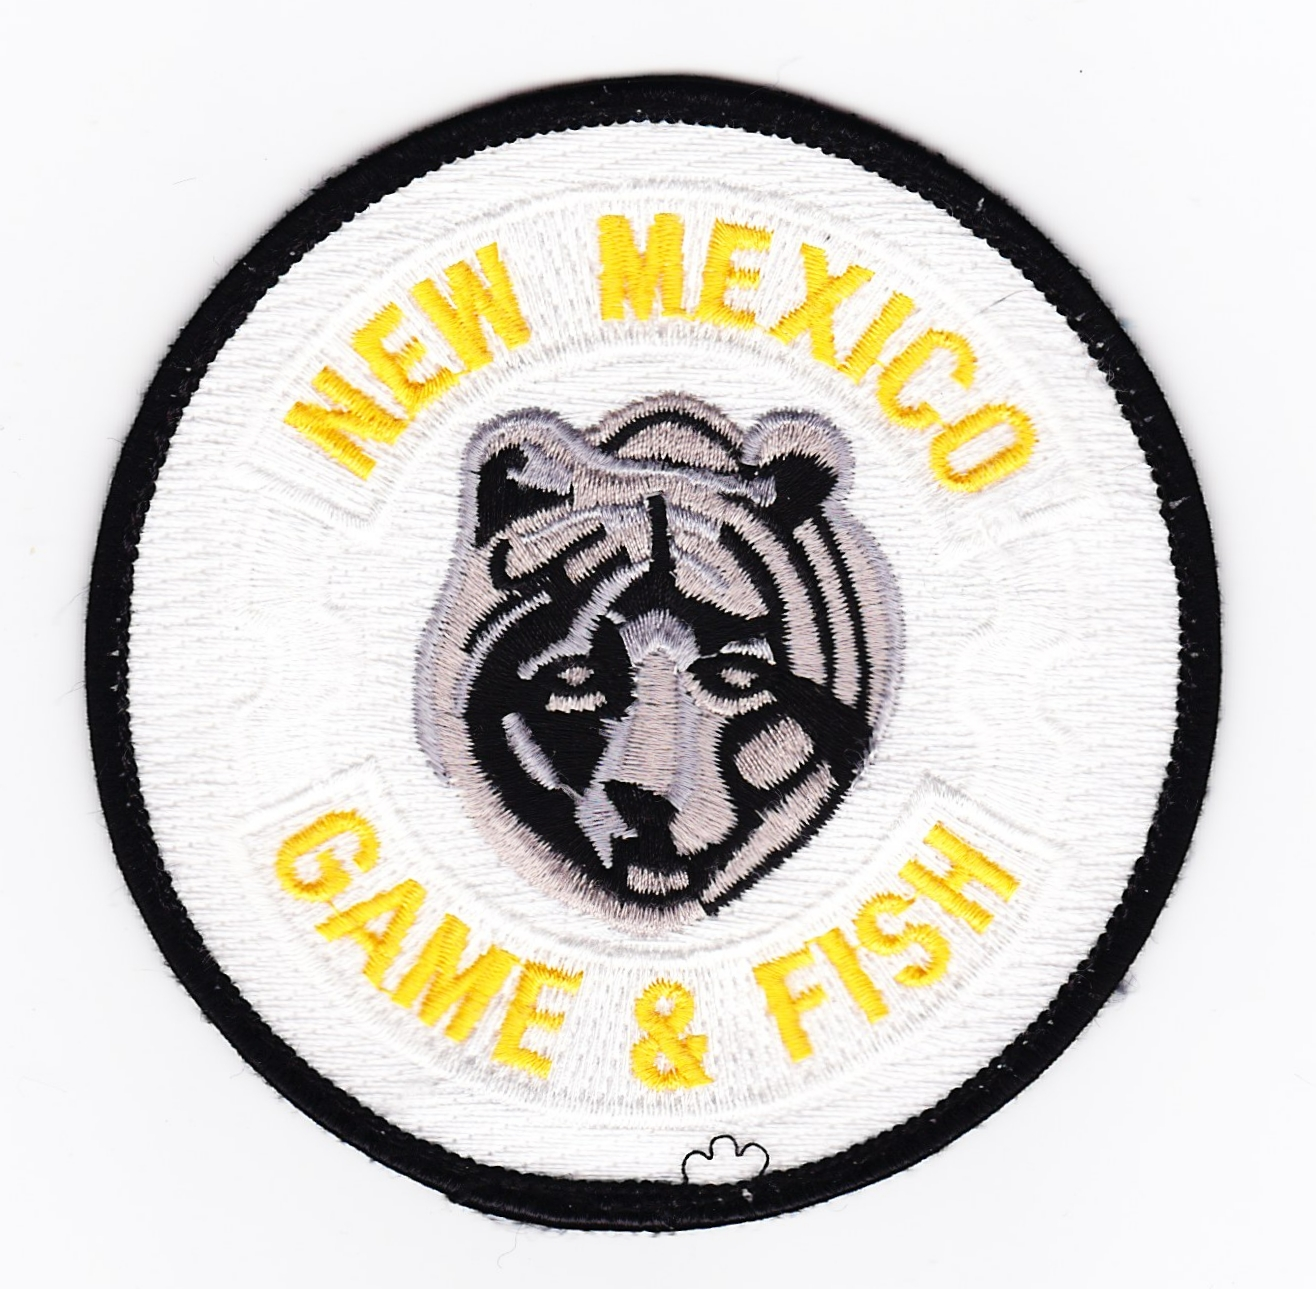 Nm new mexico department of game and fish conservation for New mexico department of game and fish